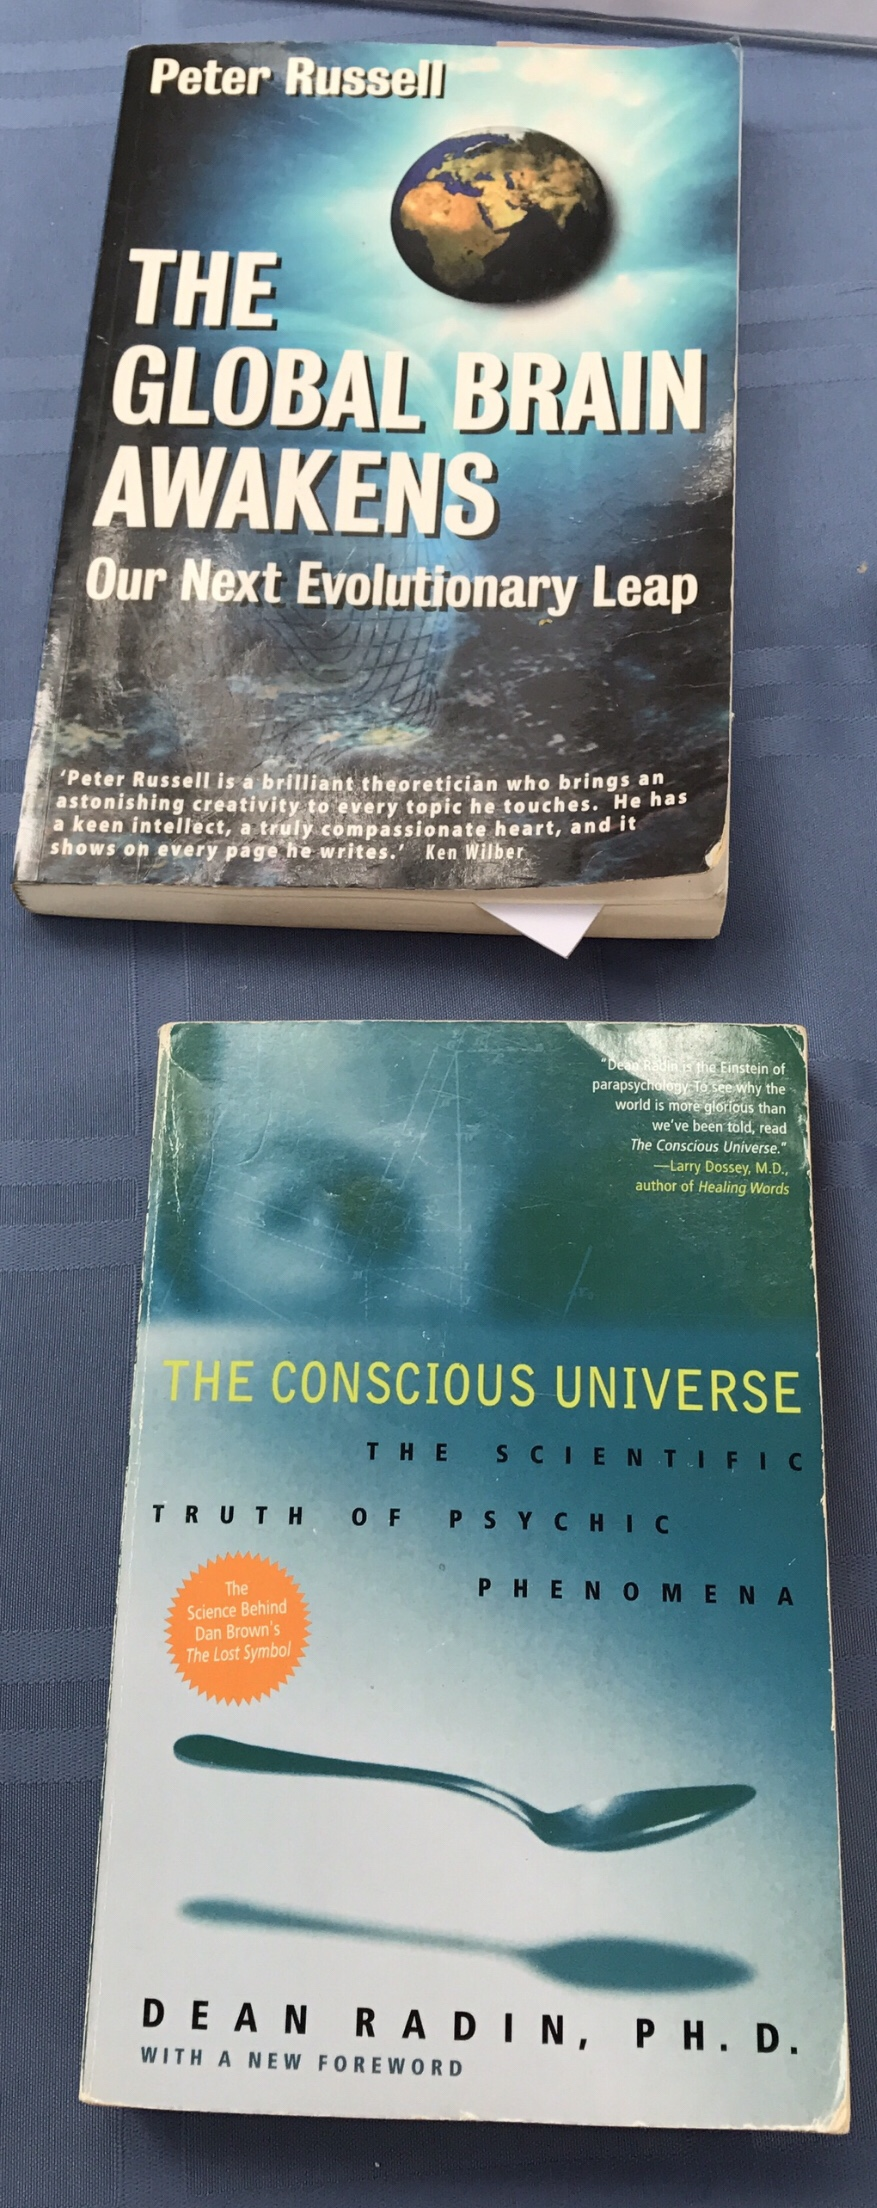 The Global Brain Awakens and The Conscious Universe